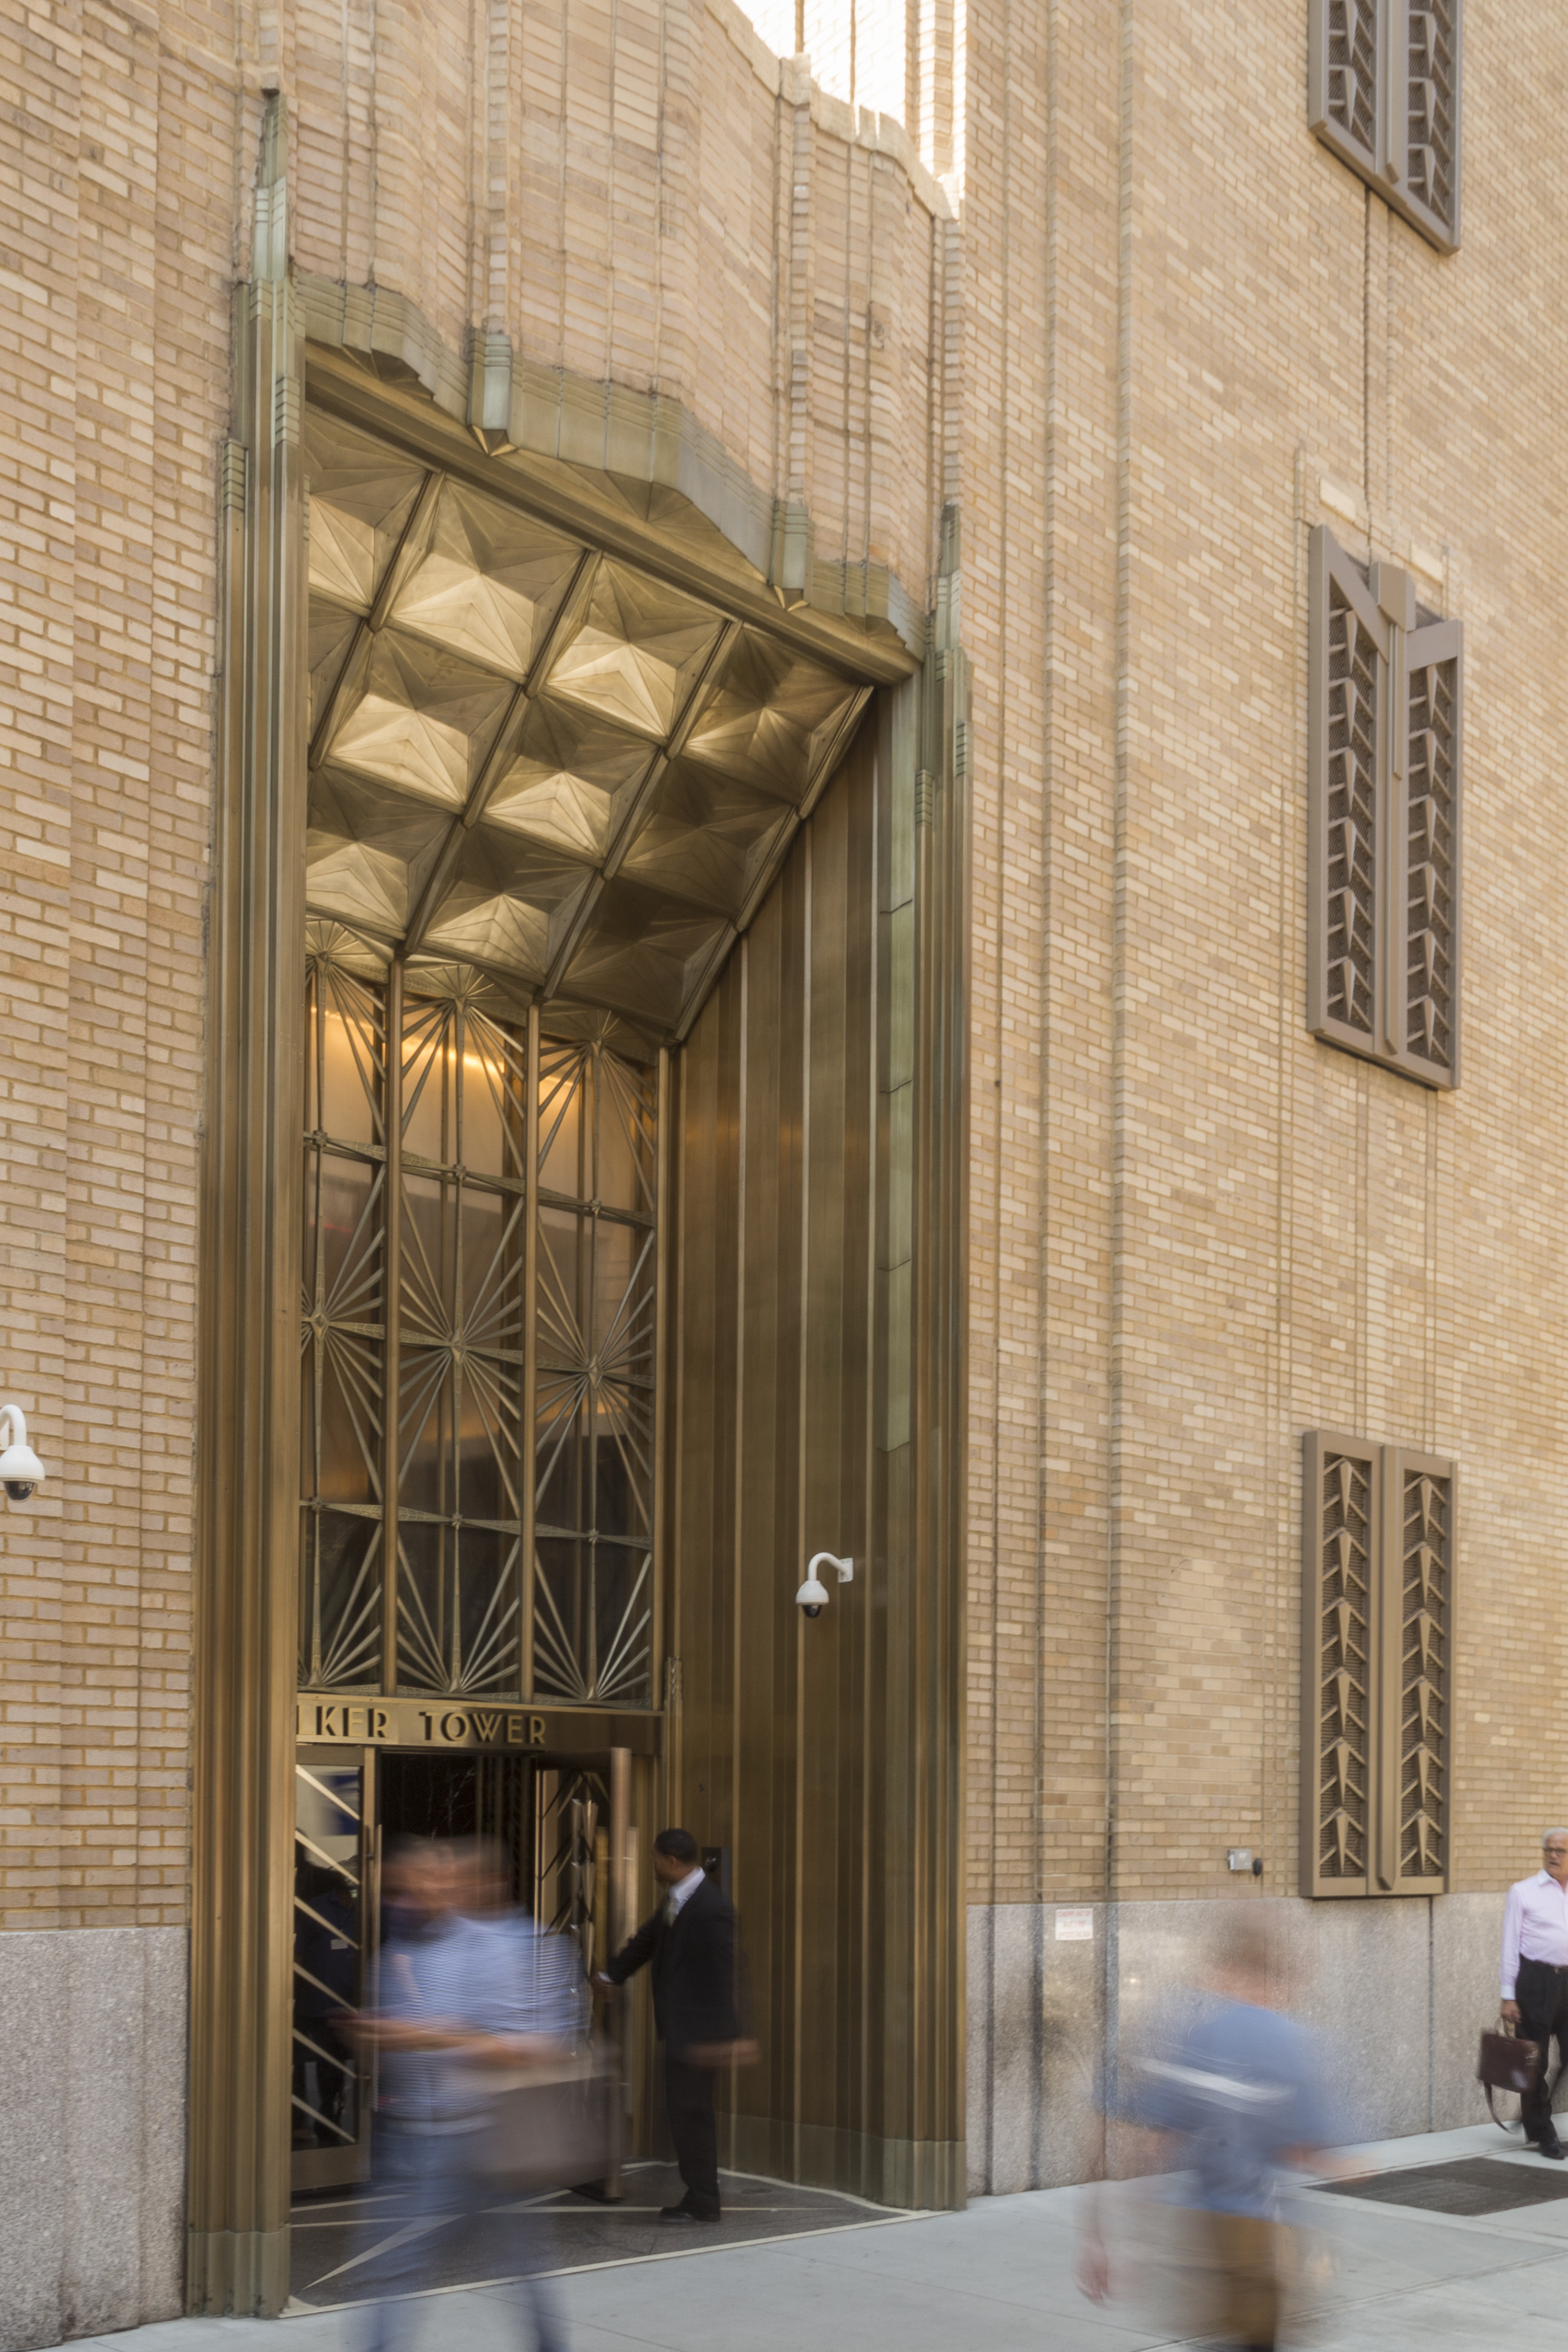 North entrance for Walker Tower in New York City.